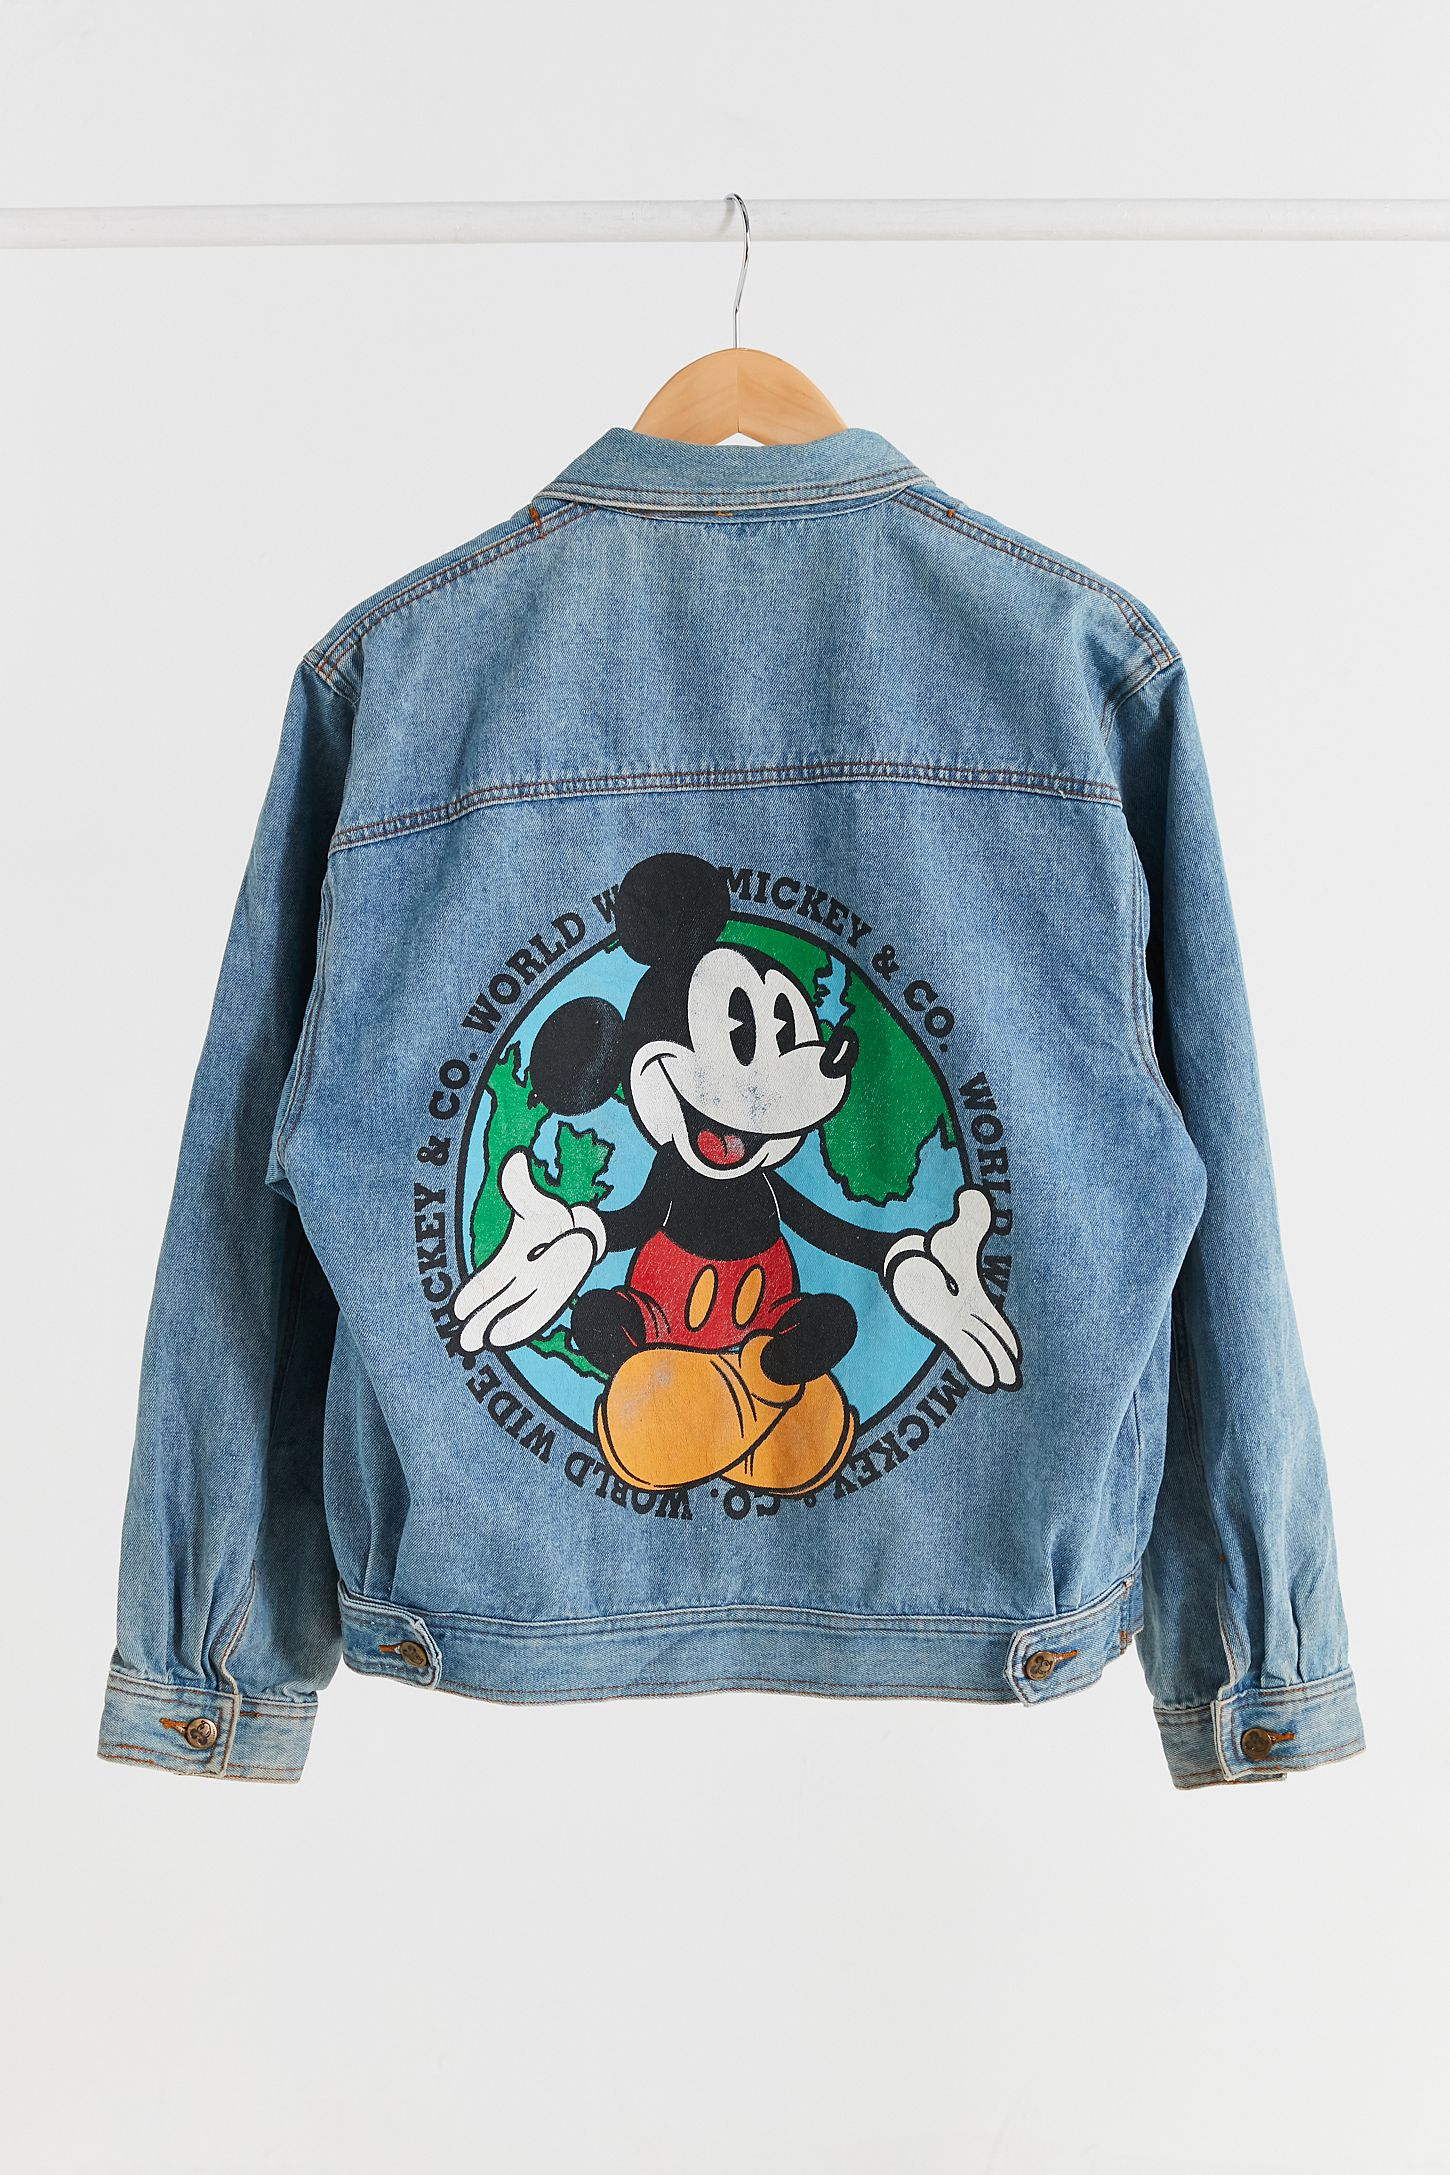 Vintage 90s Mickey Mouse Printed Denim Trucker Jacket Urban Long Hem Double Tap To Zoom